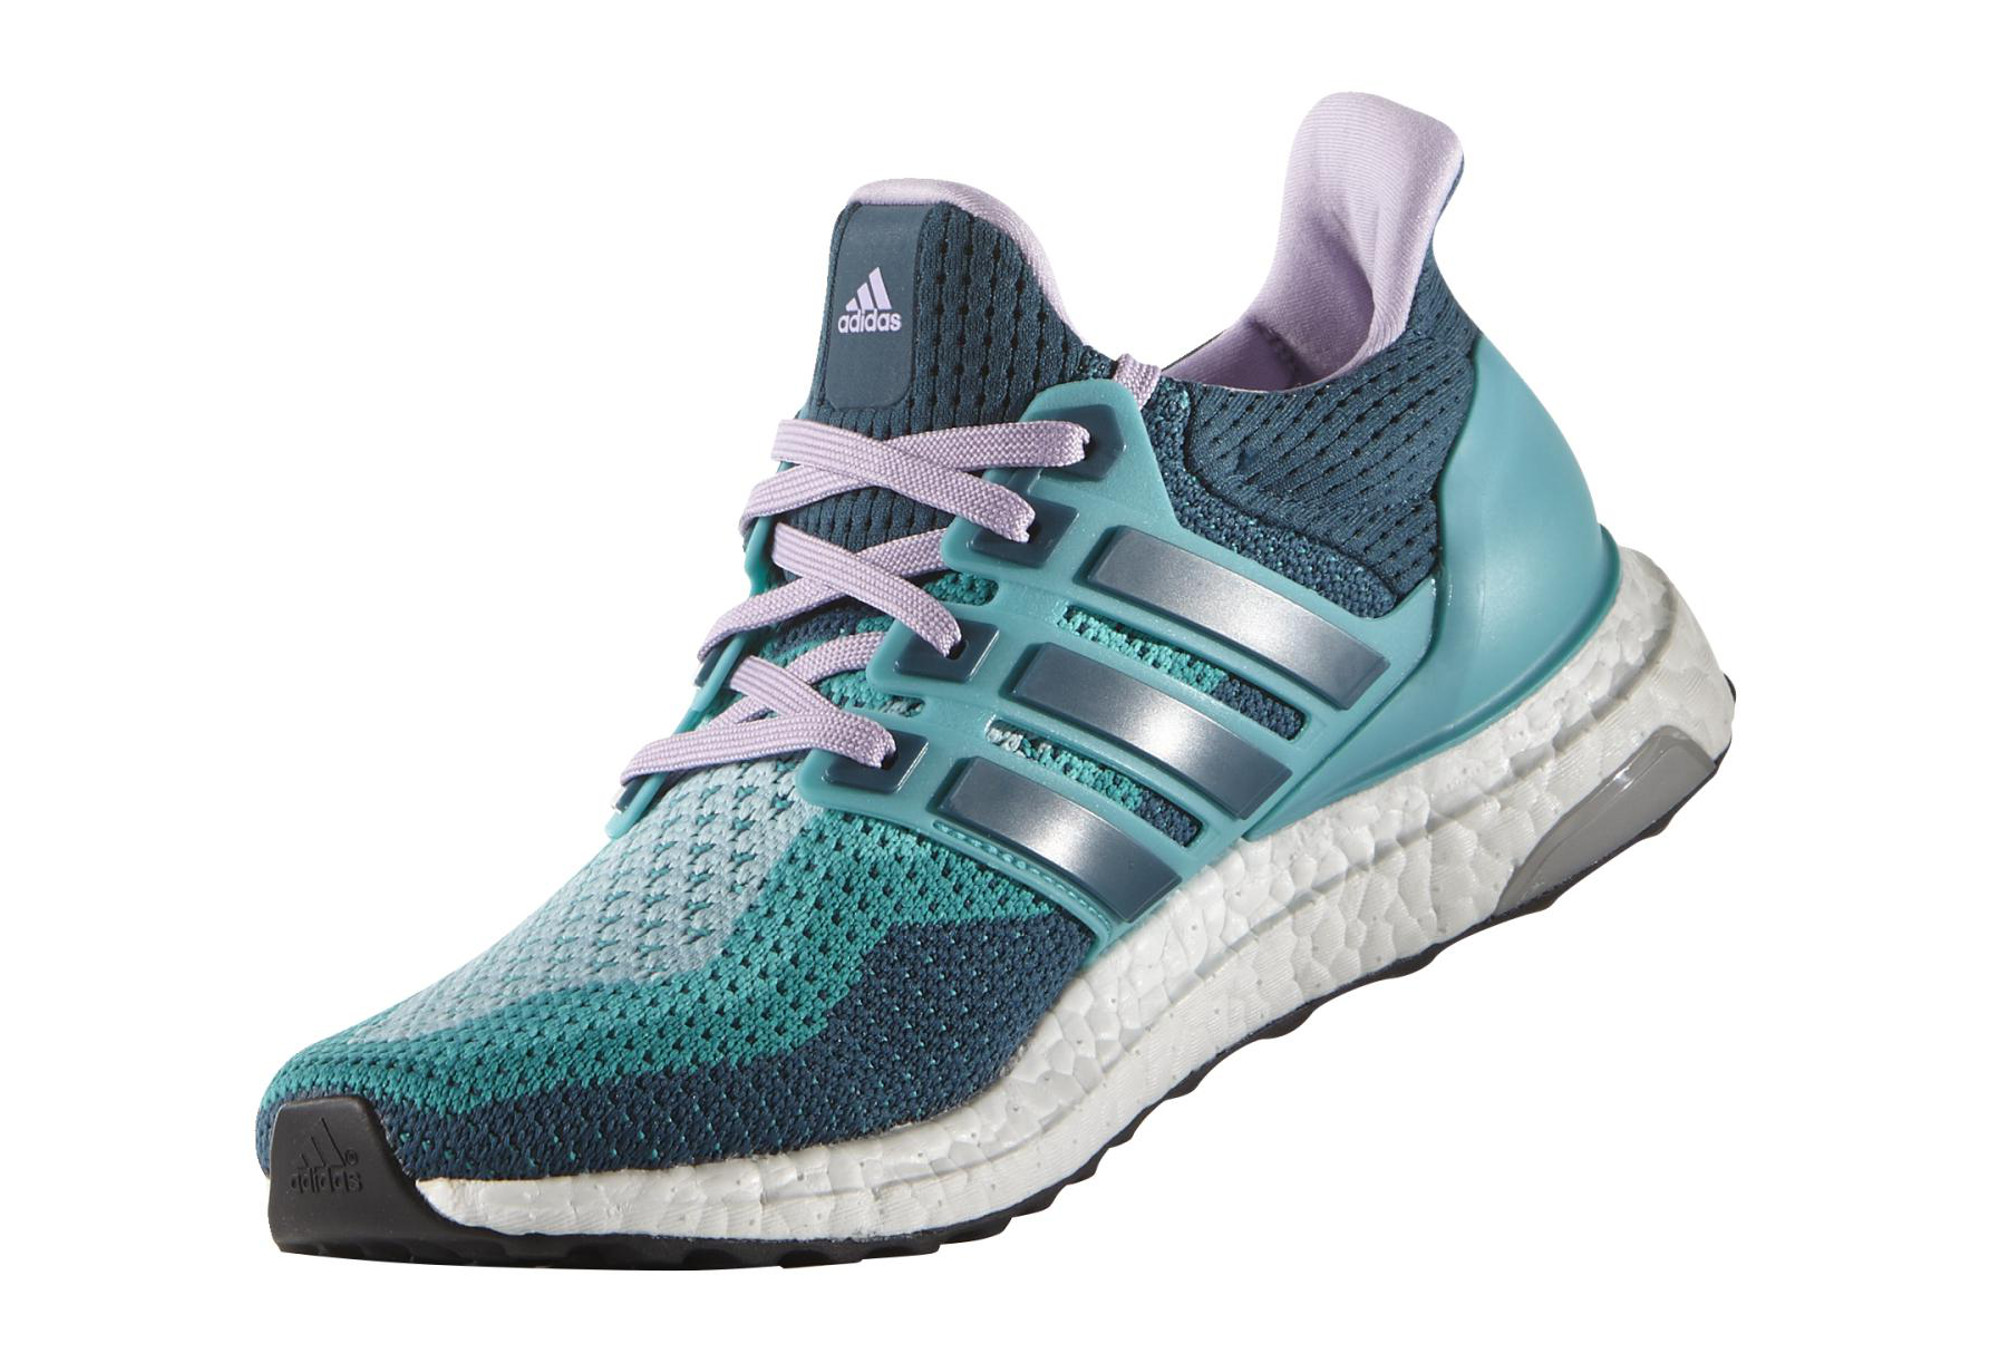 new styles 886f2 99124 ... hot chaussures de running femme adidas running ultra boost bleu 193ec  fed20